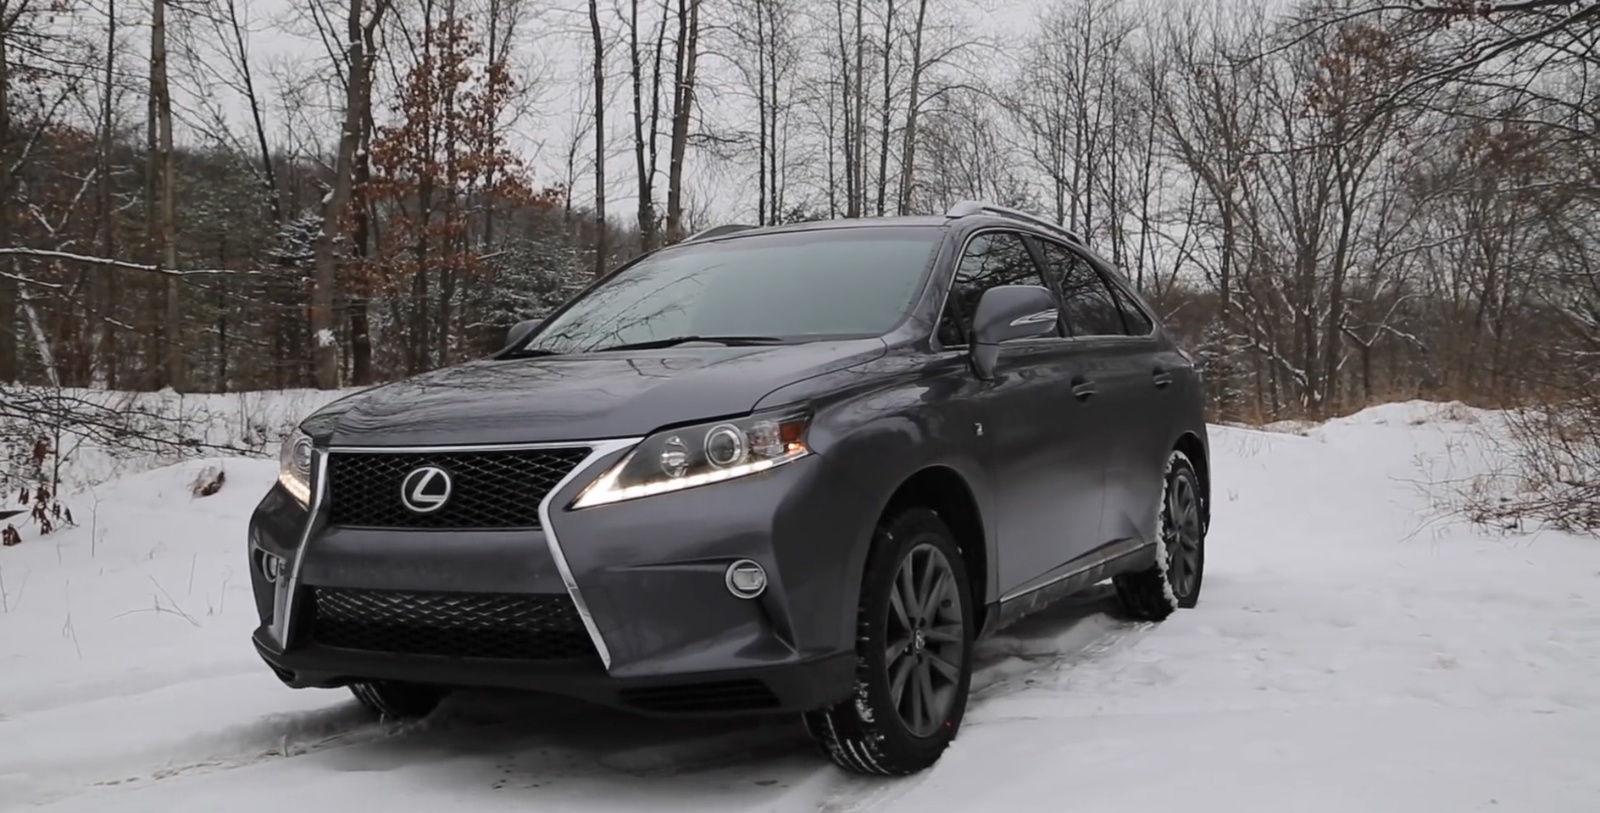 available awd massachusetts for westborough sale car used worcester rx ma lexus shrewsbury in metro marlborough